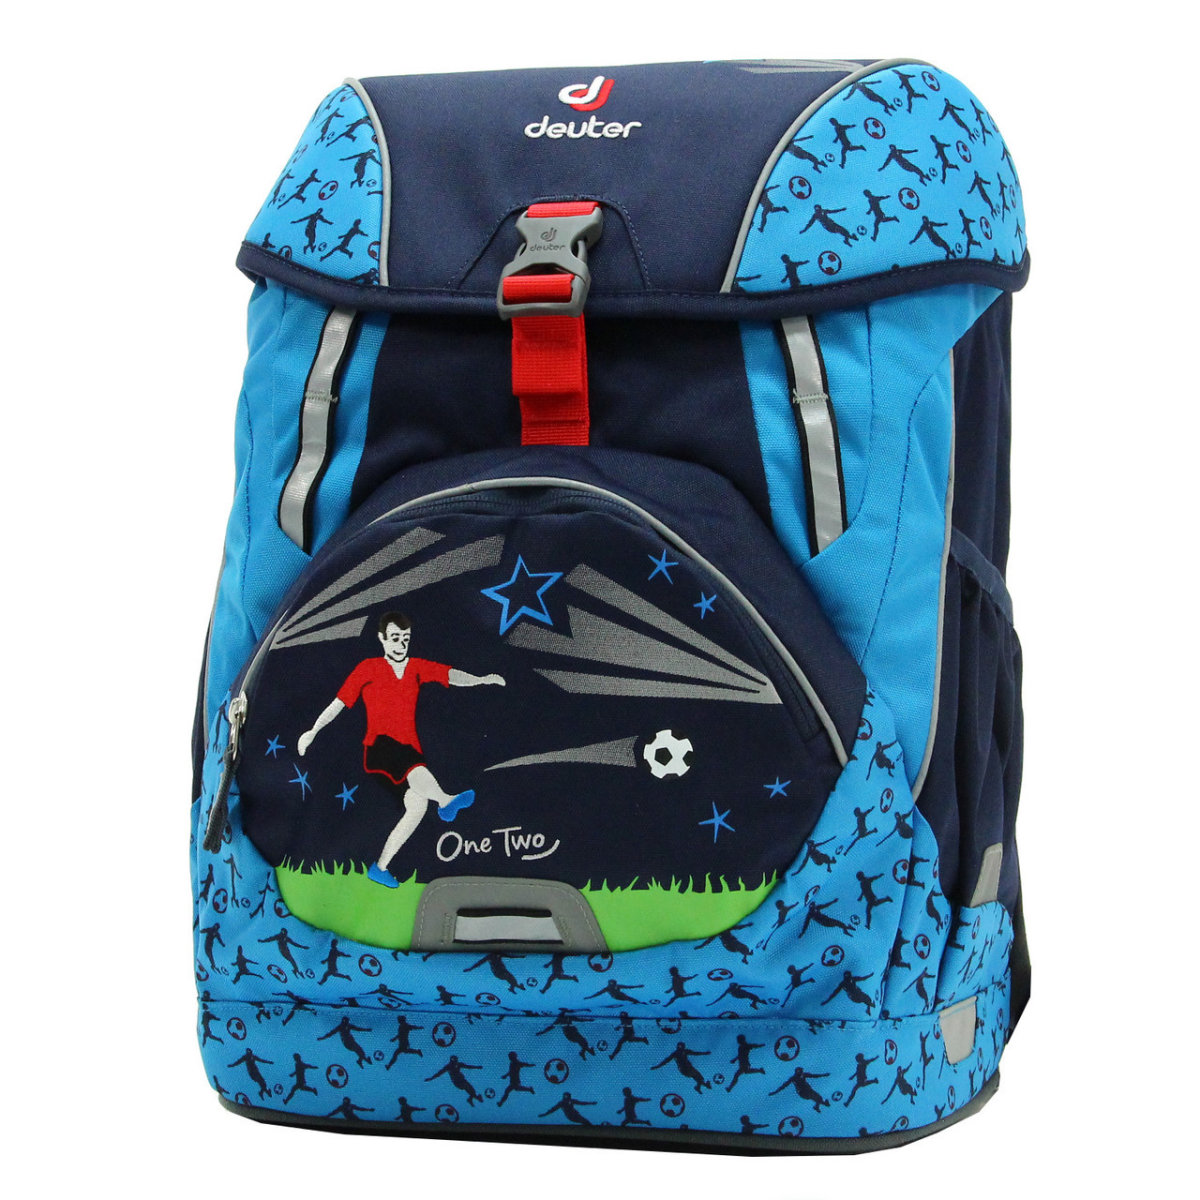 Набор сумок Deuter OneTwo Set - Sneaker Bag navy soccer 2 OneTwo Set - Hopper 3880017 3045 (SET)